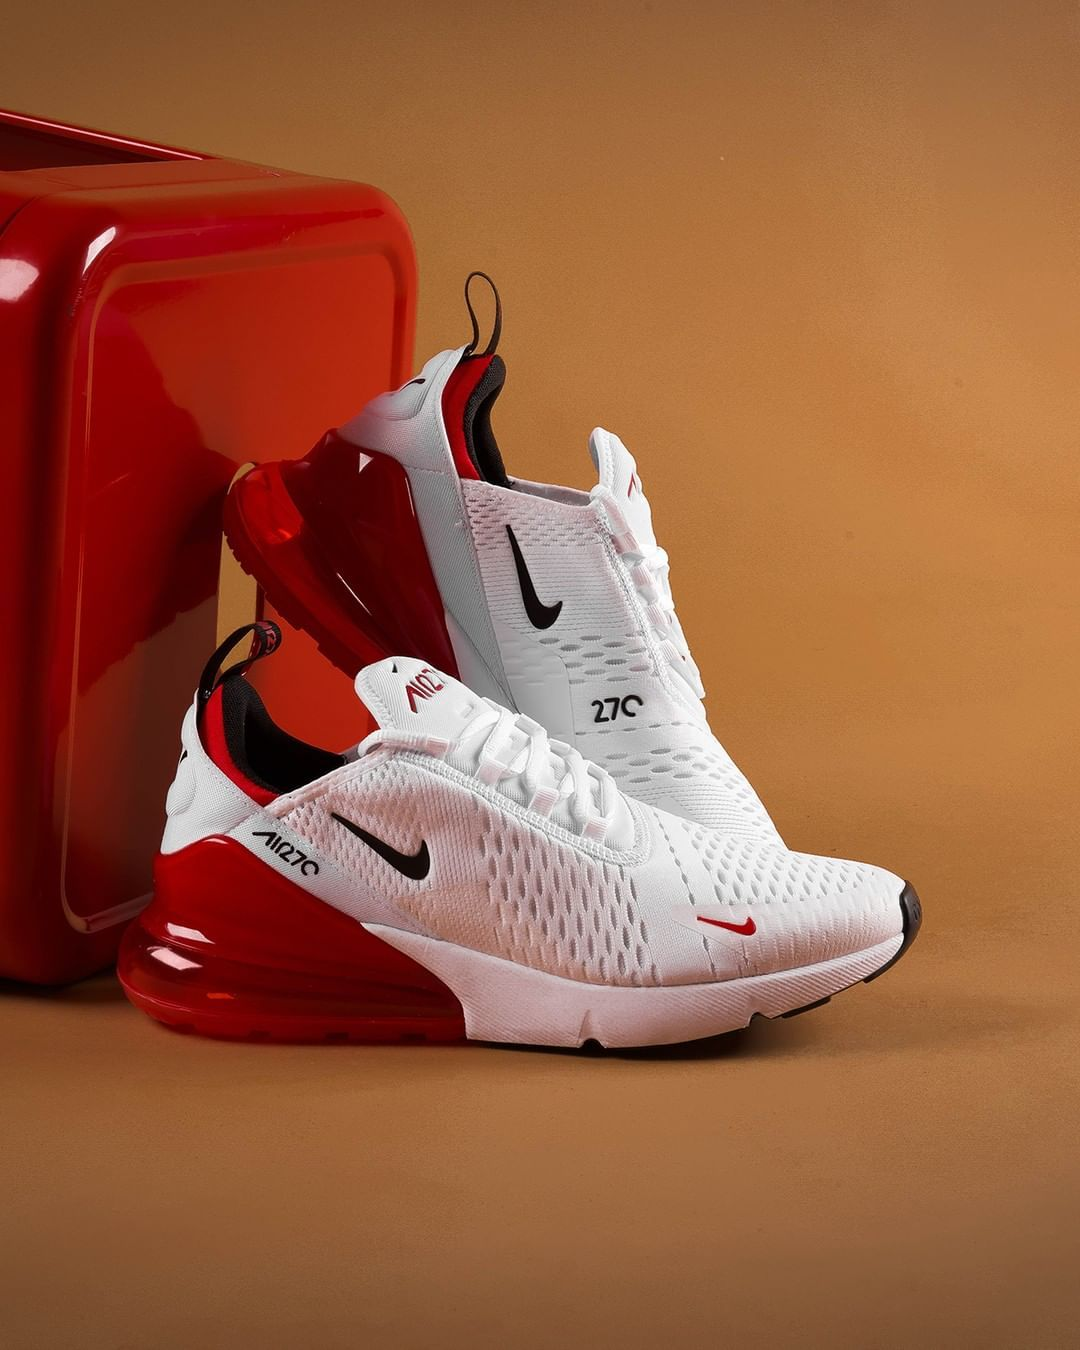 Footaction On Instagram This White Black University Red Looks Super Clean On The Nike Air Max 270 Available I Sneakers Nike Air Max Sneakers Sneakers Nike